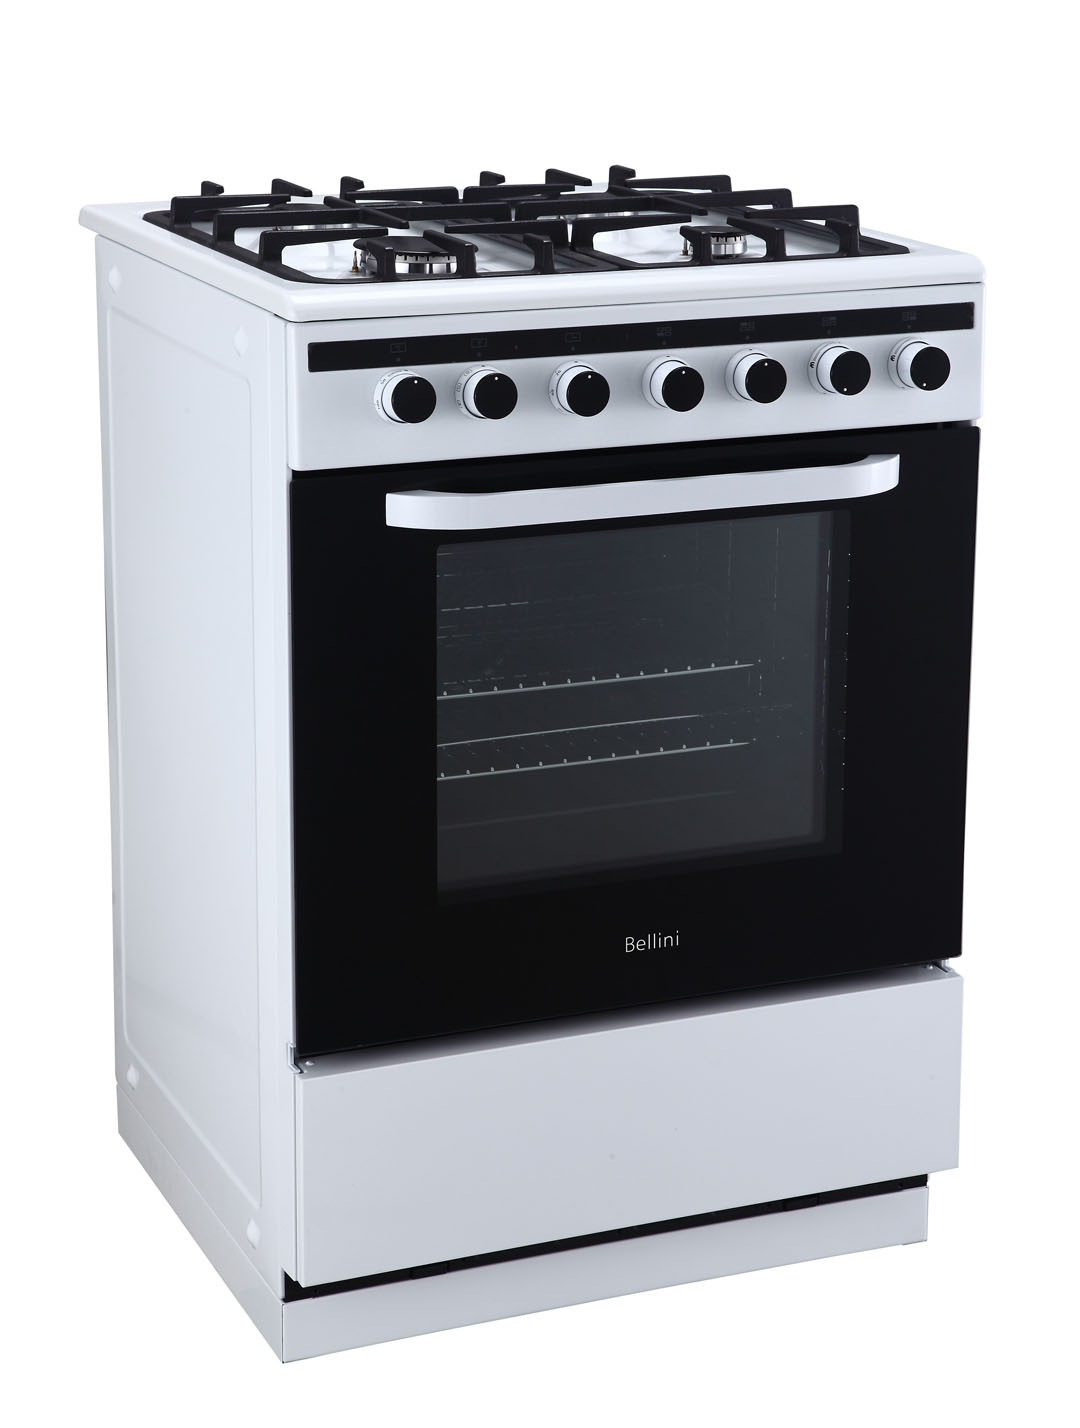 Bellini Appliances: An oven for every home